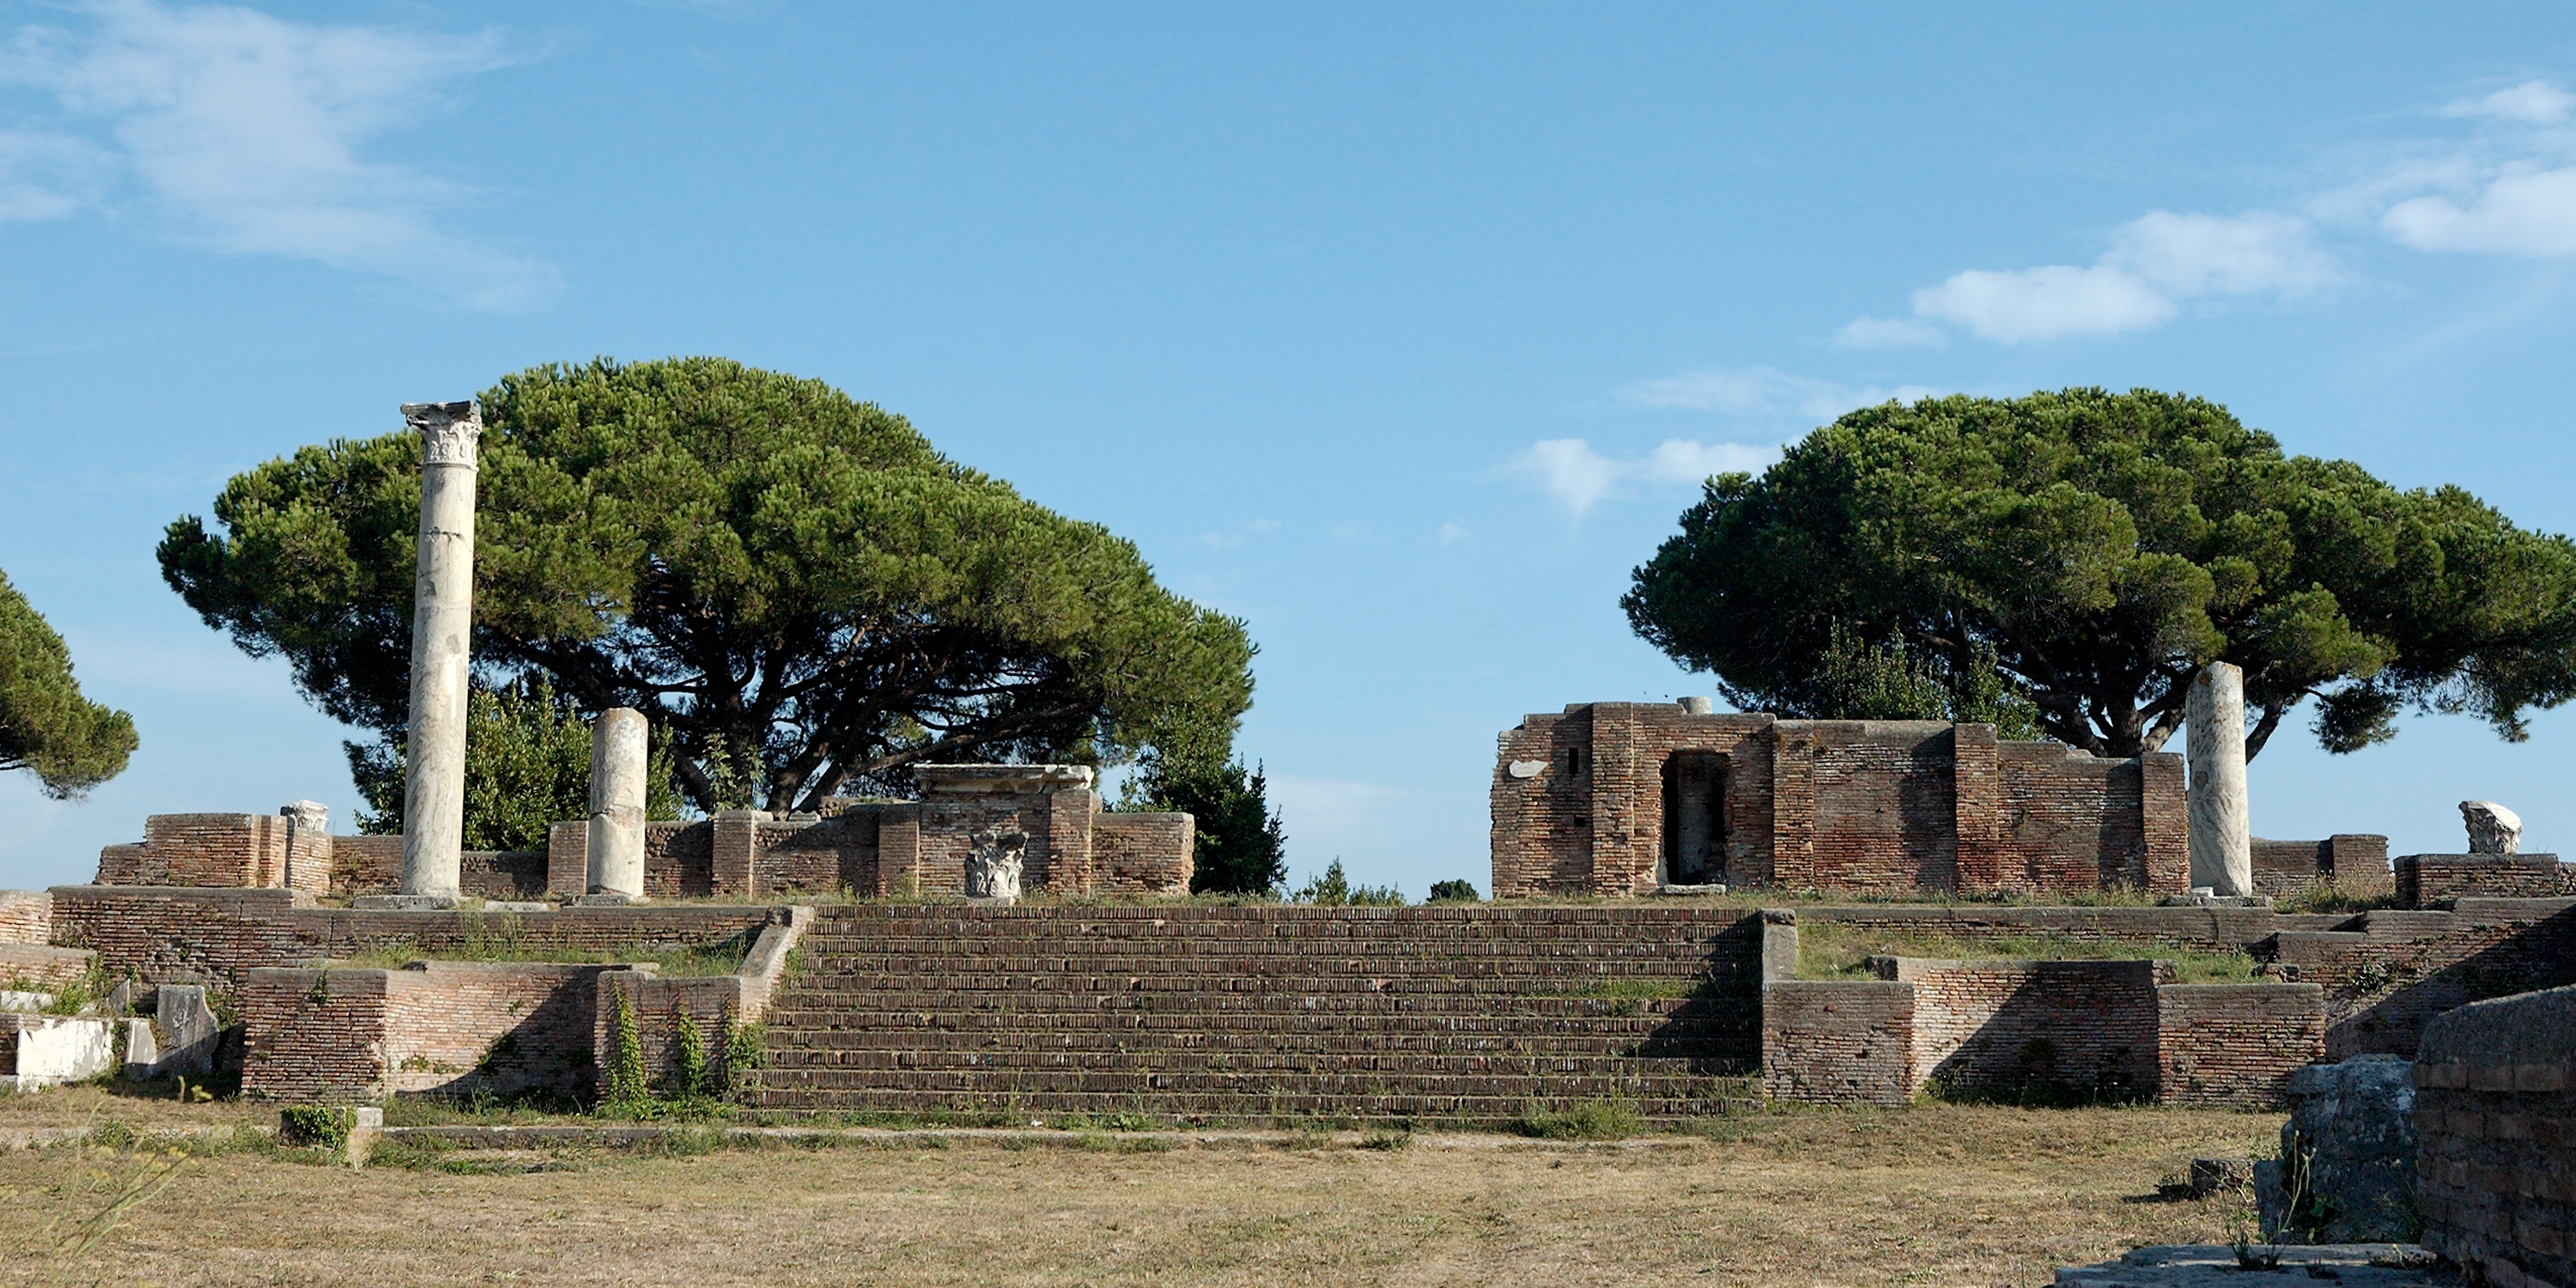 de ostia antica Description the archaeological park of ostia antica is one of the largest and most important archaeological sites of ancient rome with its fifty hectares, its buildings and its streets, it testifies to the development of a large urban and commercial center during the imperial age.